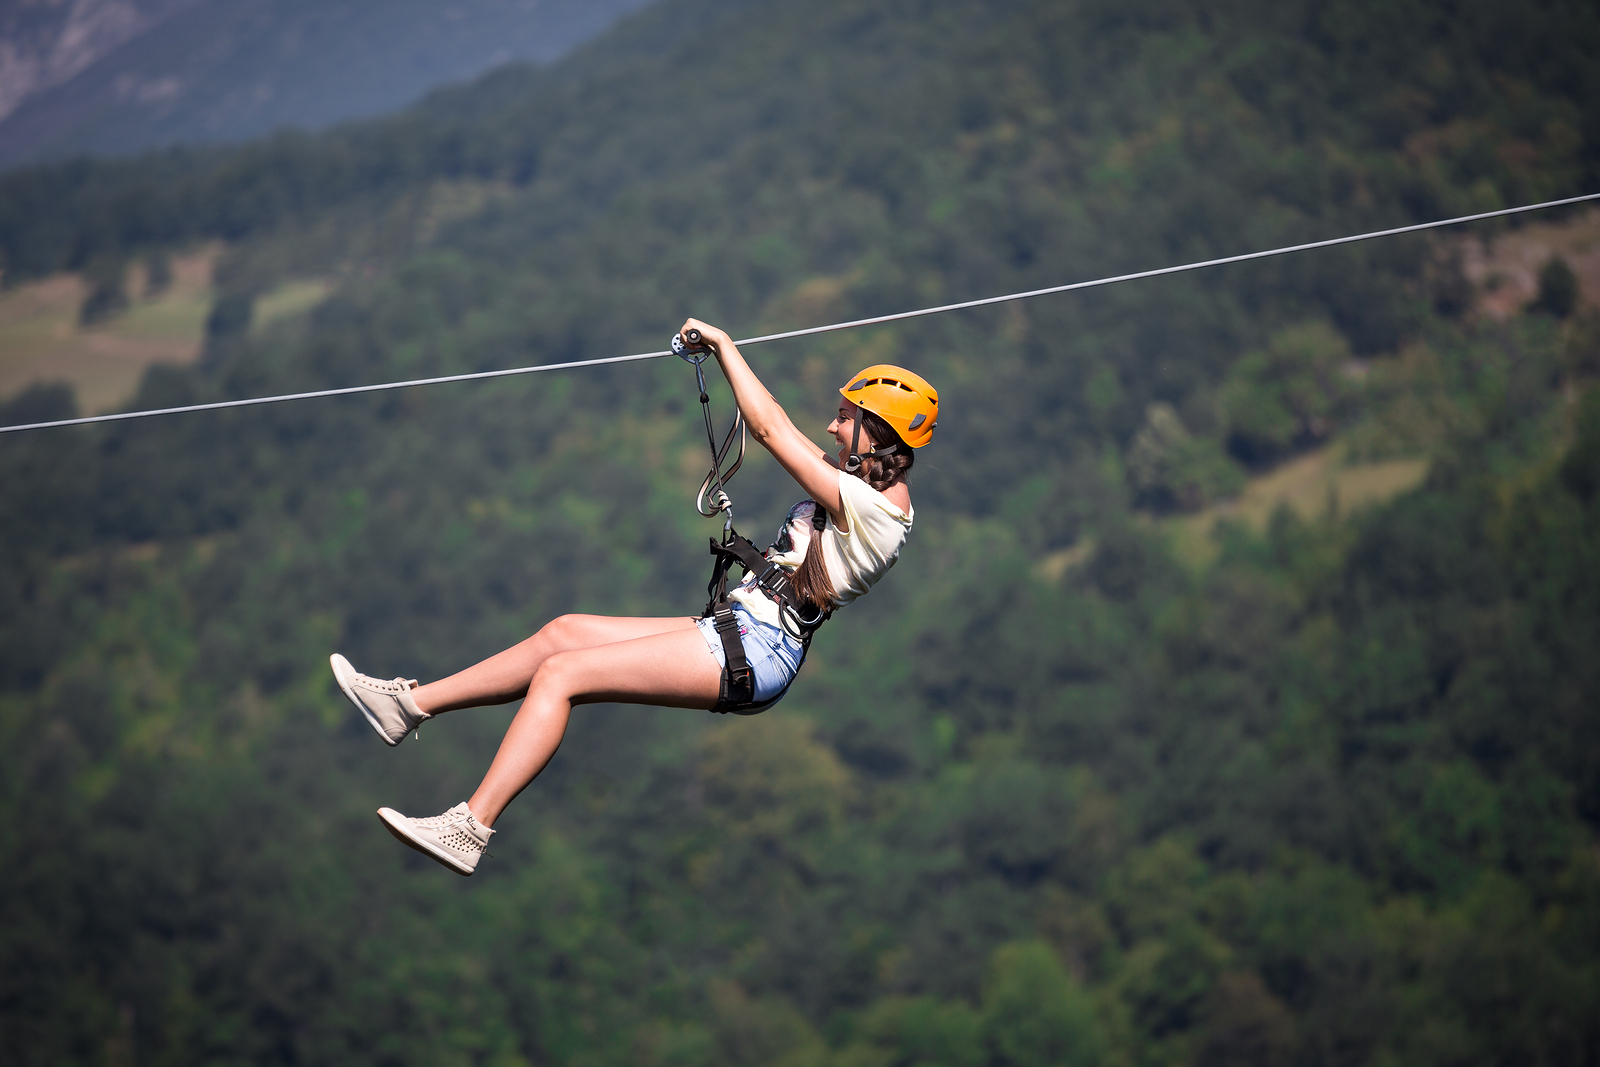 bigstock-Adult-woman-on-zip-line-89015582.jpg